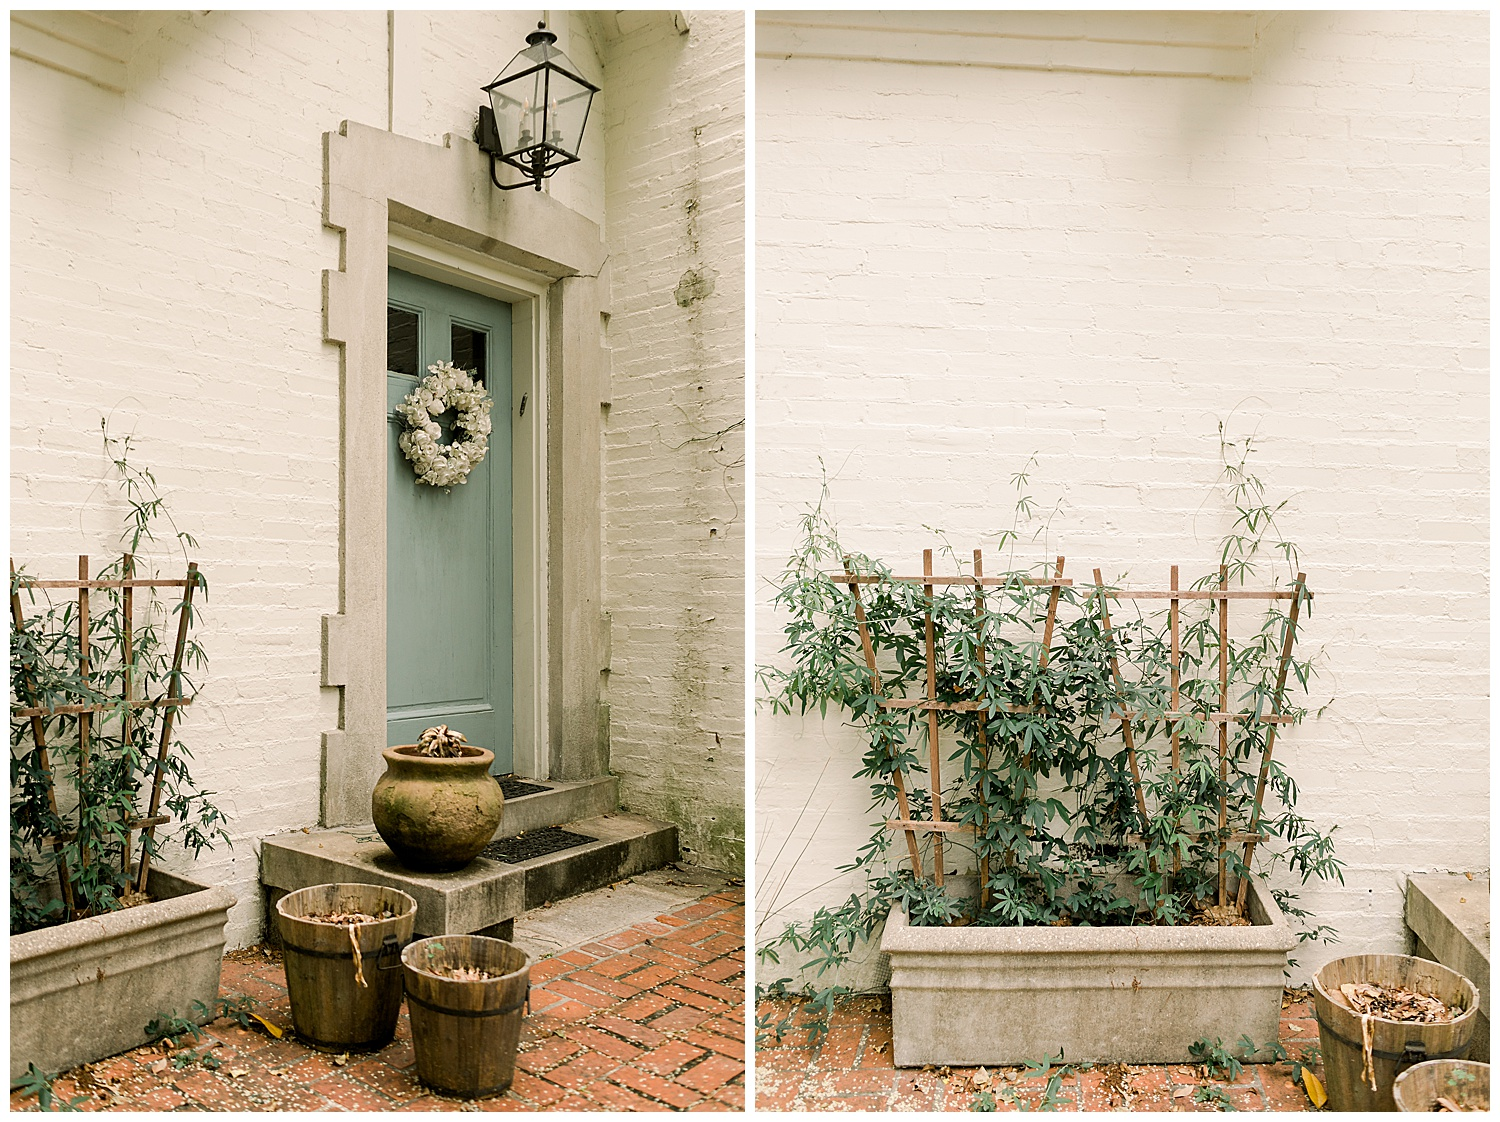 anthropologie-home-chickasaw-gardens-memphis-mary-kate-steele-photography